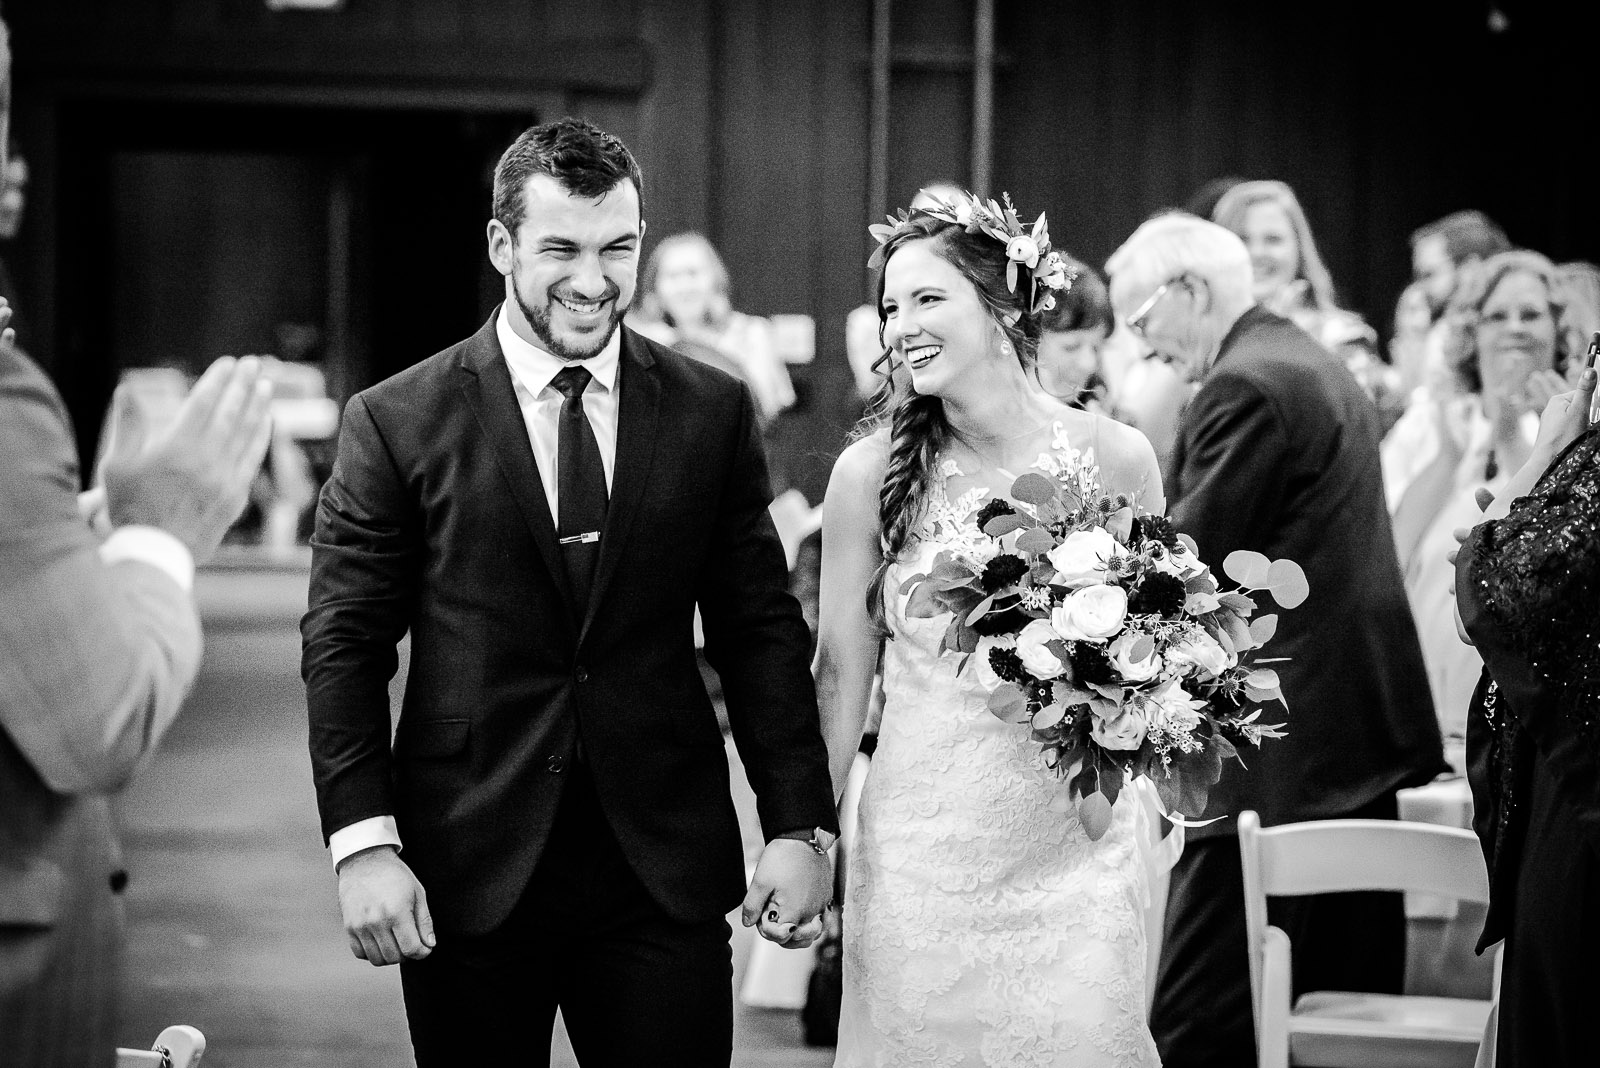 Eric_and_Christy_Photography_Blog_Stephanie_Nick_Wedding-92